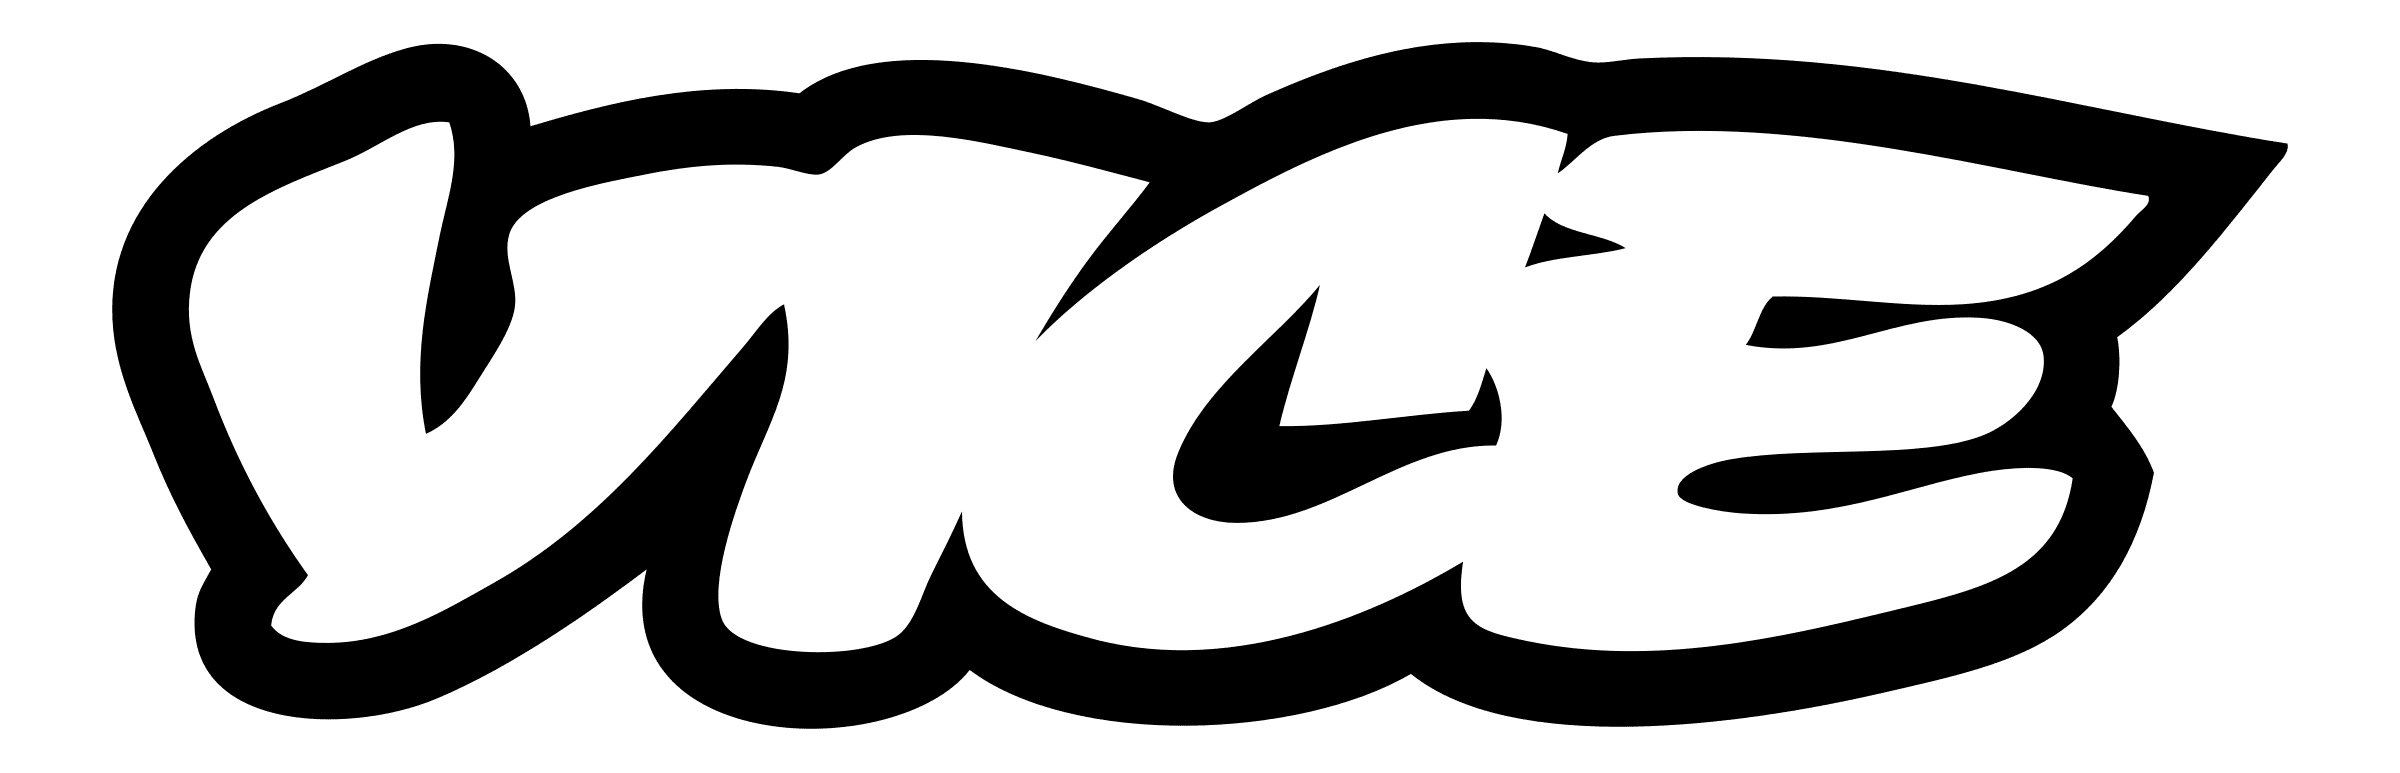 Dr. Michele Noonan Ross featured on Vice Media